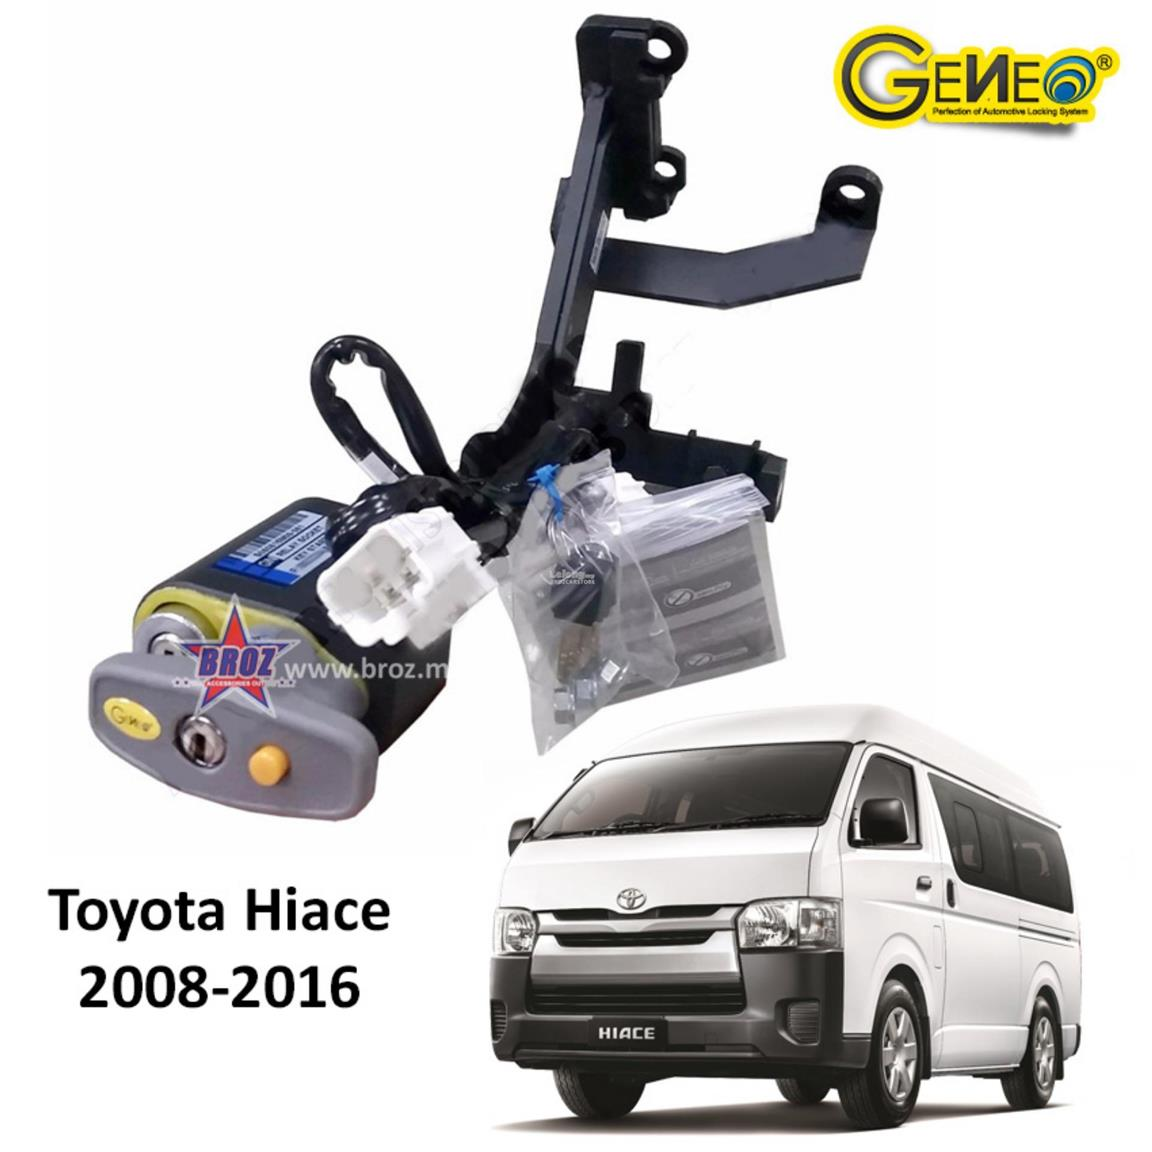 Toyota Hiace 2008-2016 (MANUAL Key Start Only) GENEO Pedal Lock